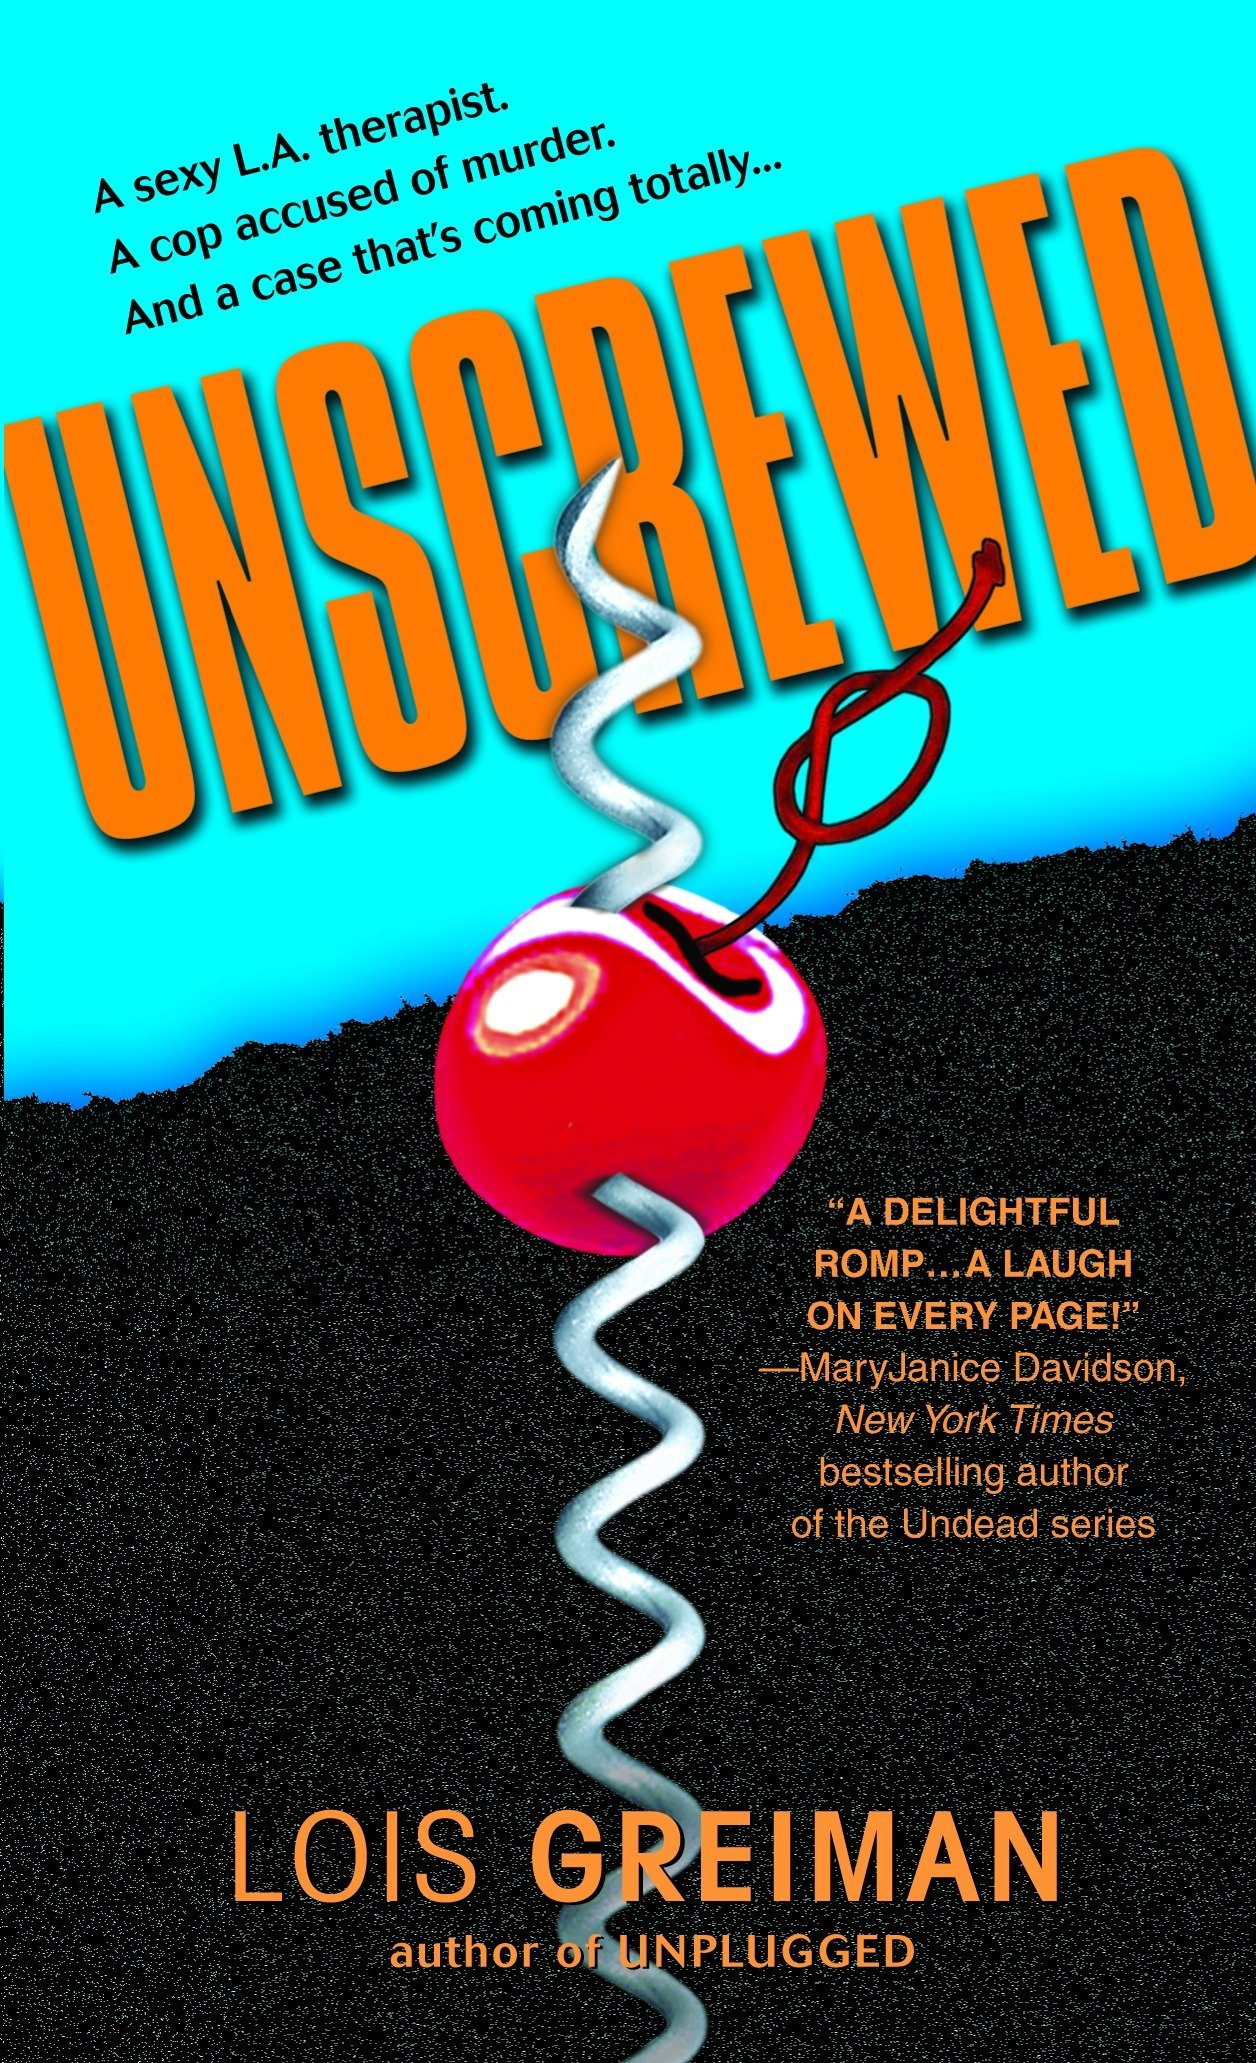 unfortunate chrissy mcmullen mystery series